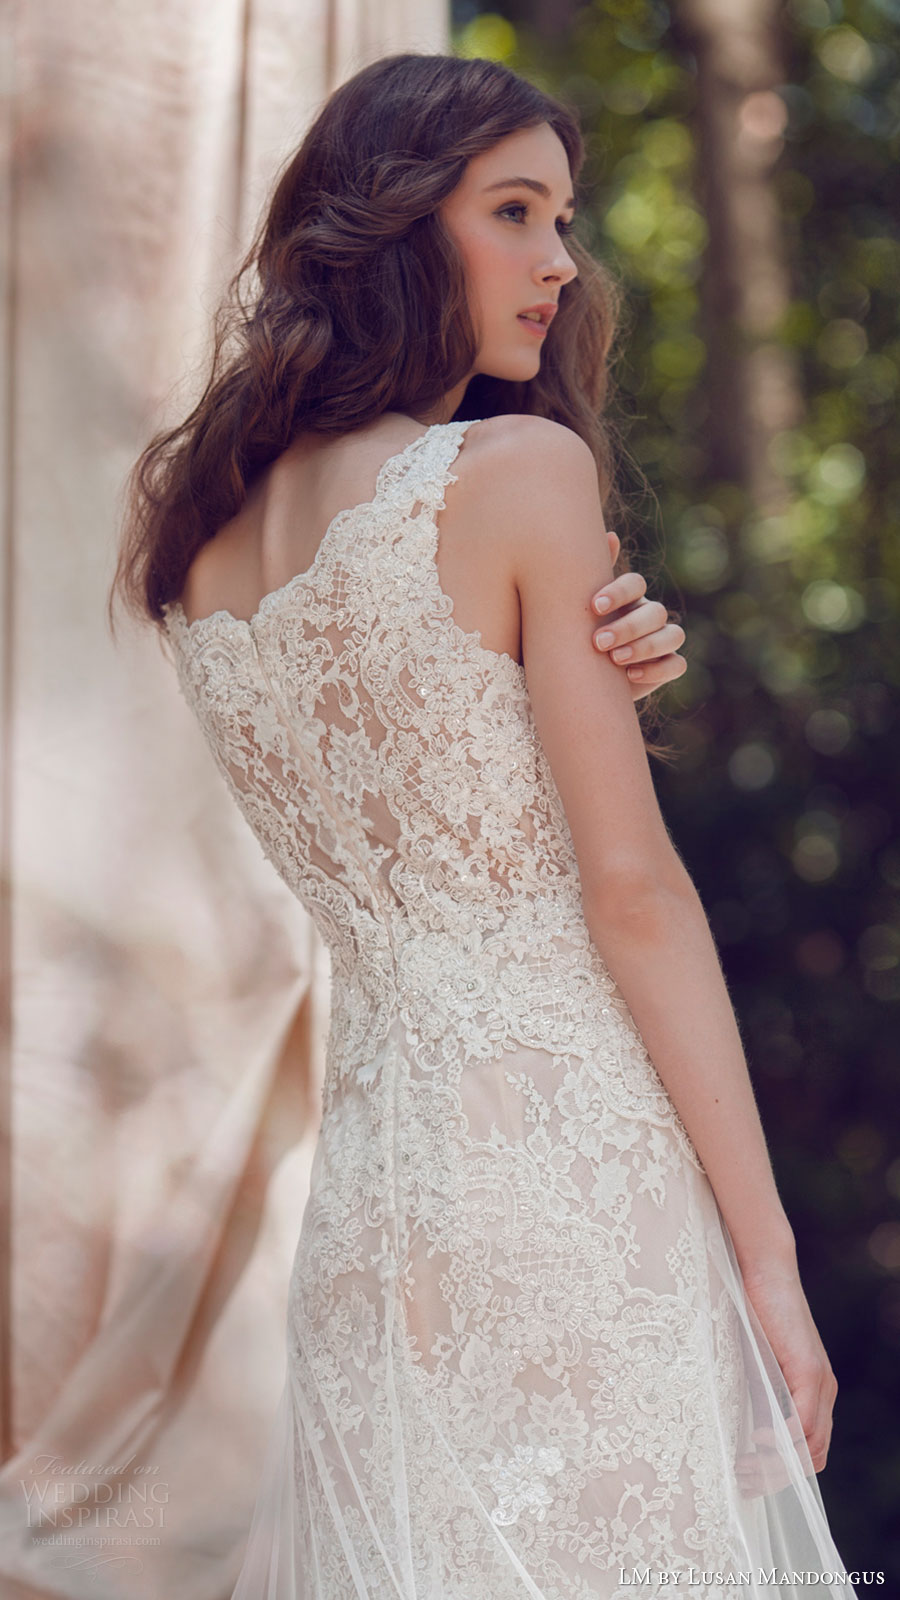 lm lusan mandongus bridal 2017 sleeveless vneck lace trumpet wedding dress (lm3250b) zbv illusion back